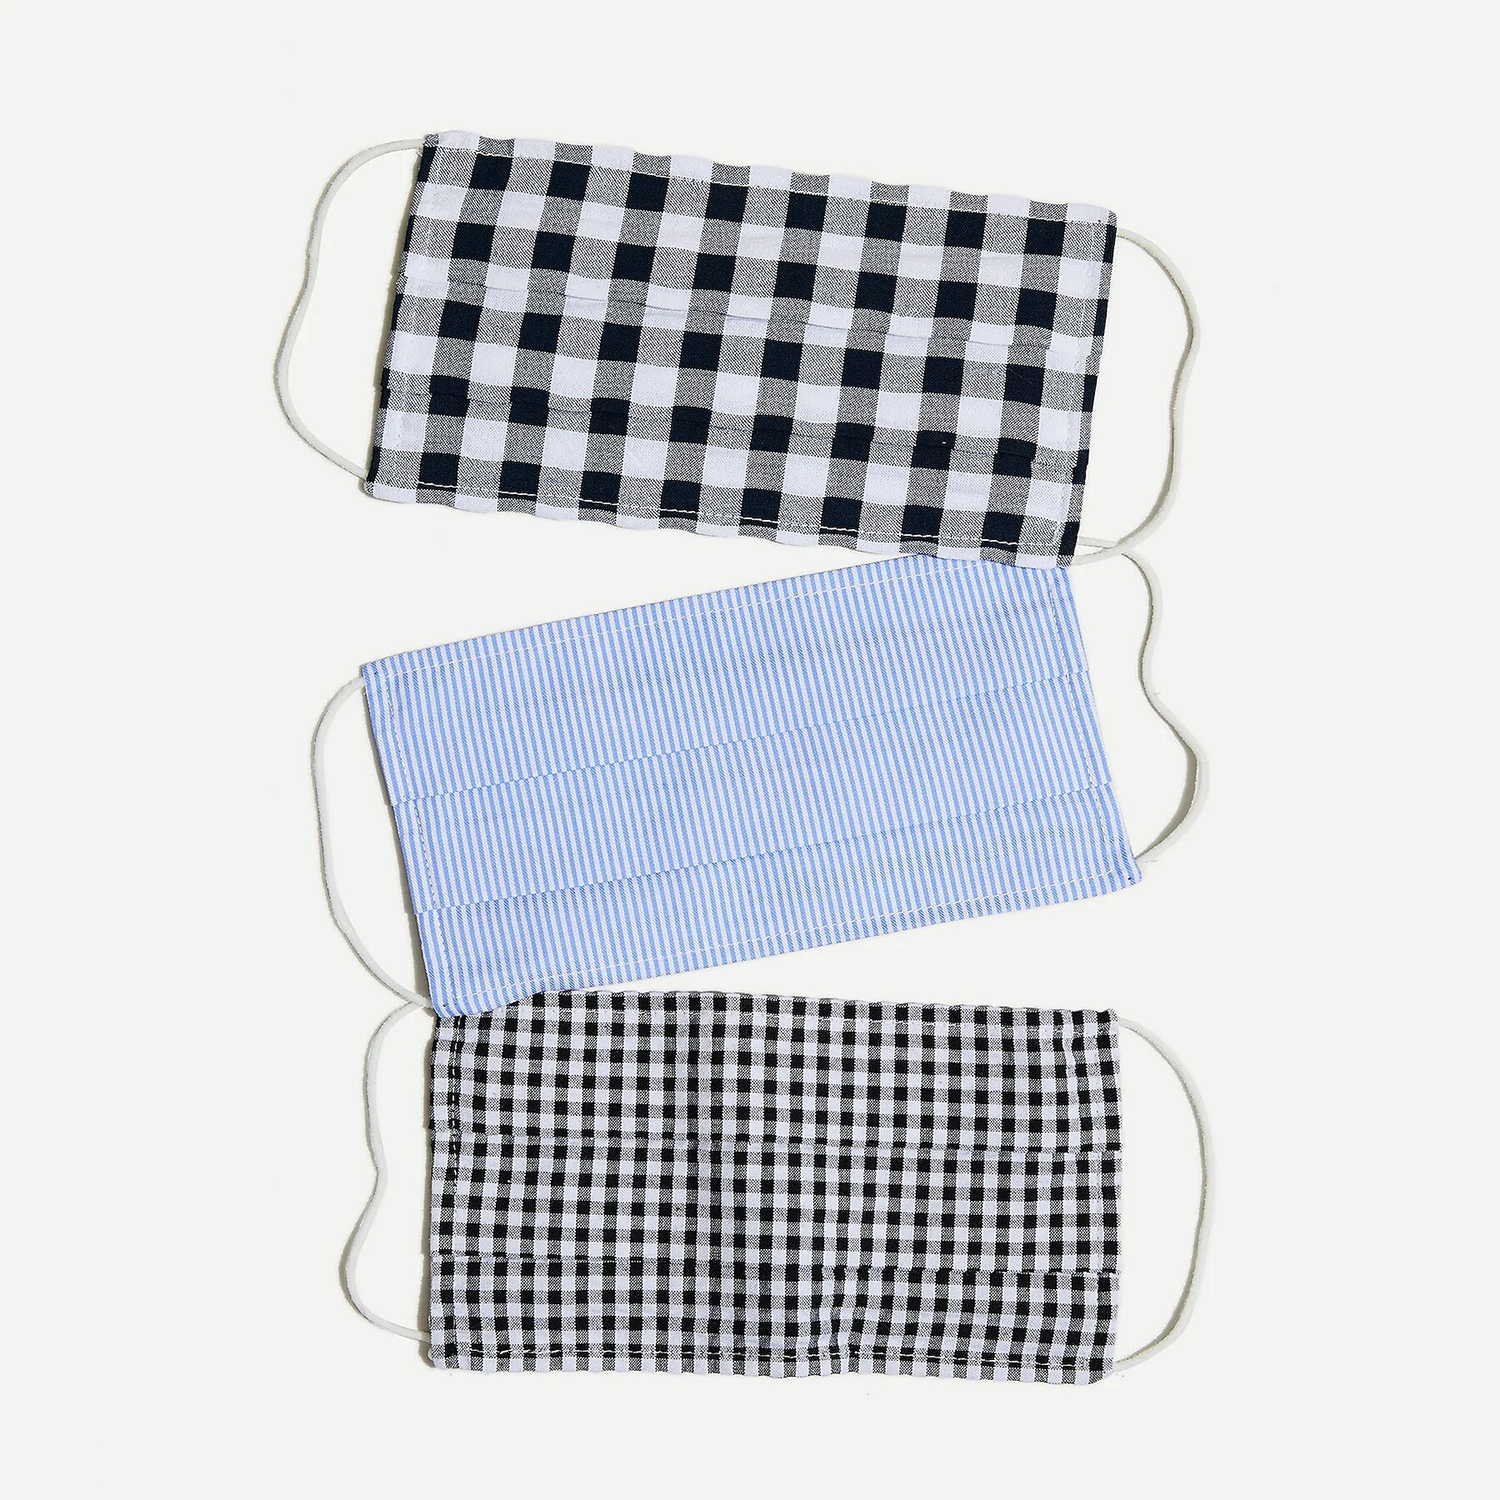 JCrew Pack of three nonmedical face masks in mixed prints